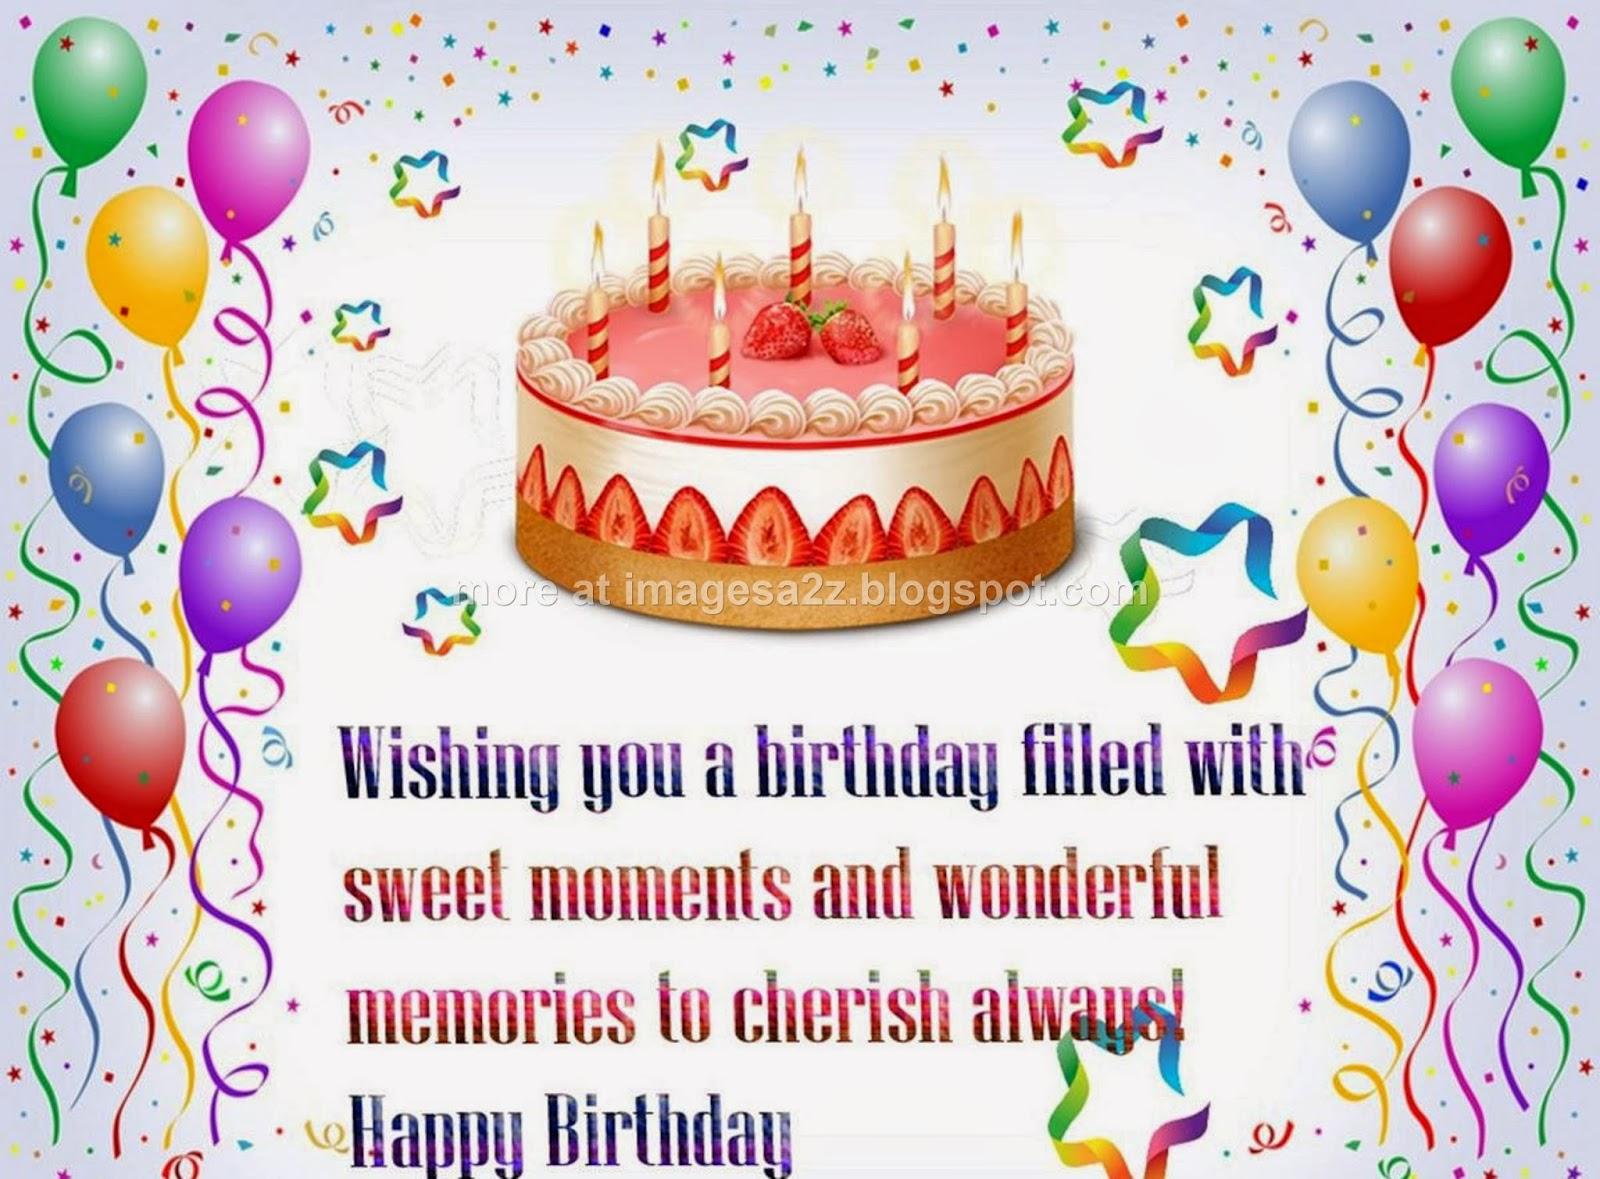 Happy Birthday Wishes For Best Friend Girl Cake Happy Birthday Wishes Quotes Cakes Messages Sms Greetings Ecards Pictures Images Hd Free